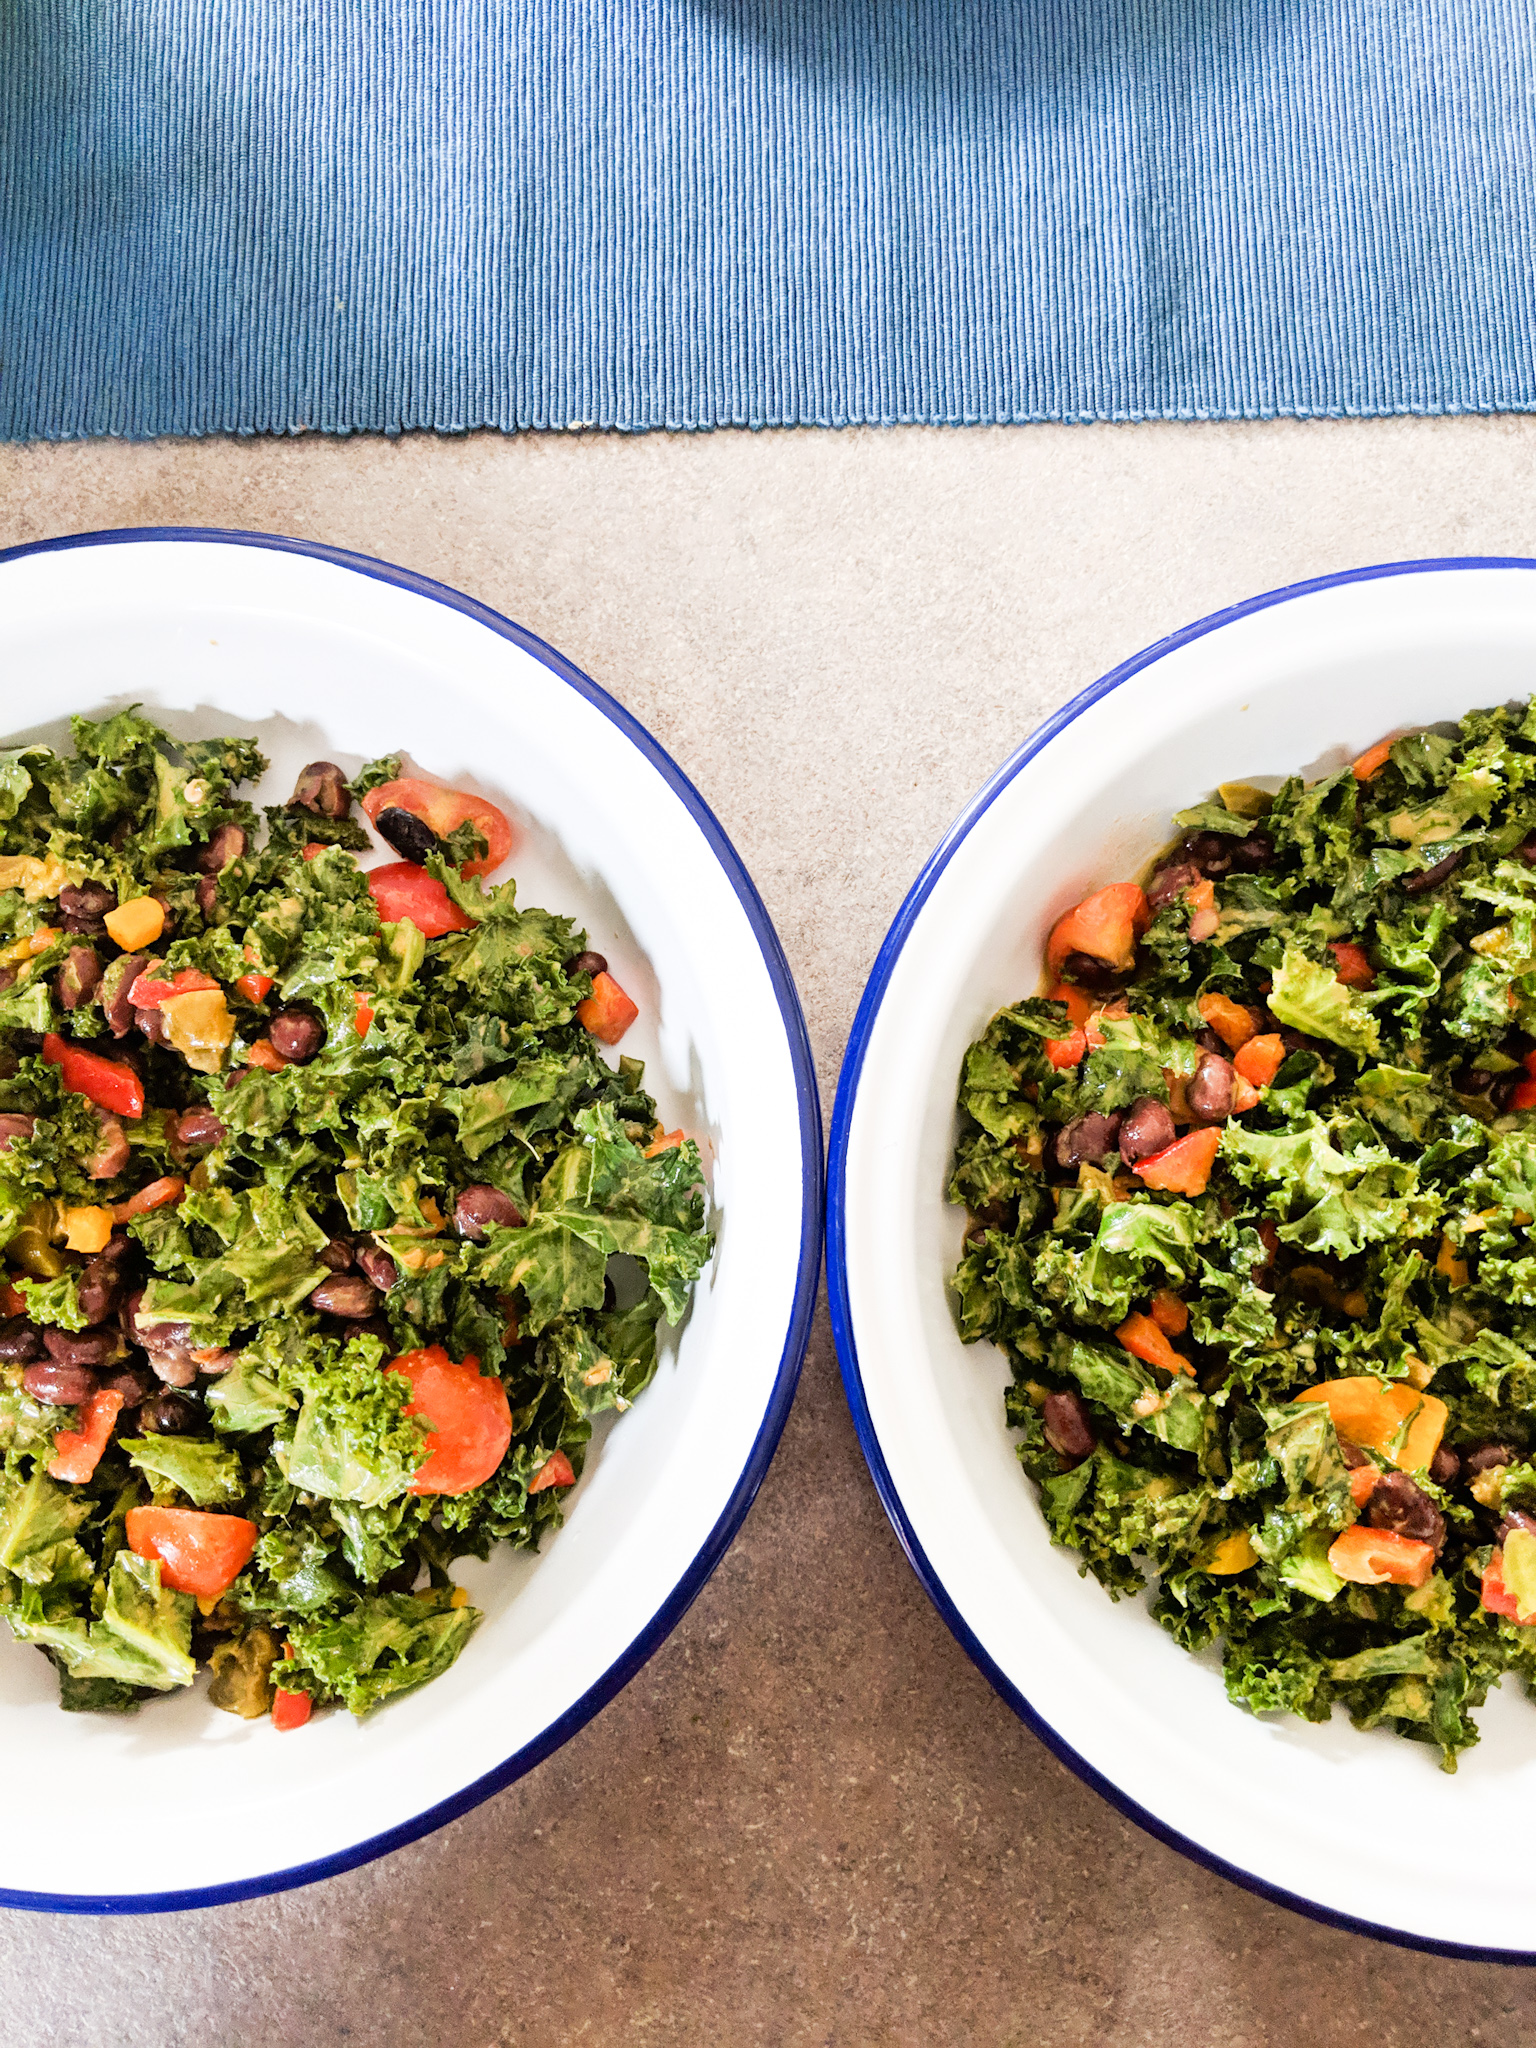 Dressed Kale Layer + Peppers, Black Beans, Tomatoes, Avocado + Jalapenos Layer